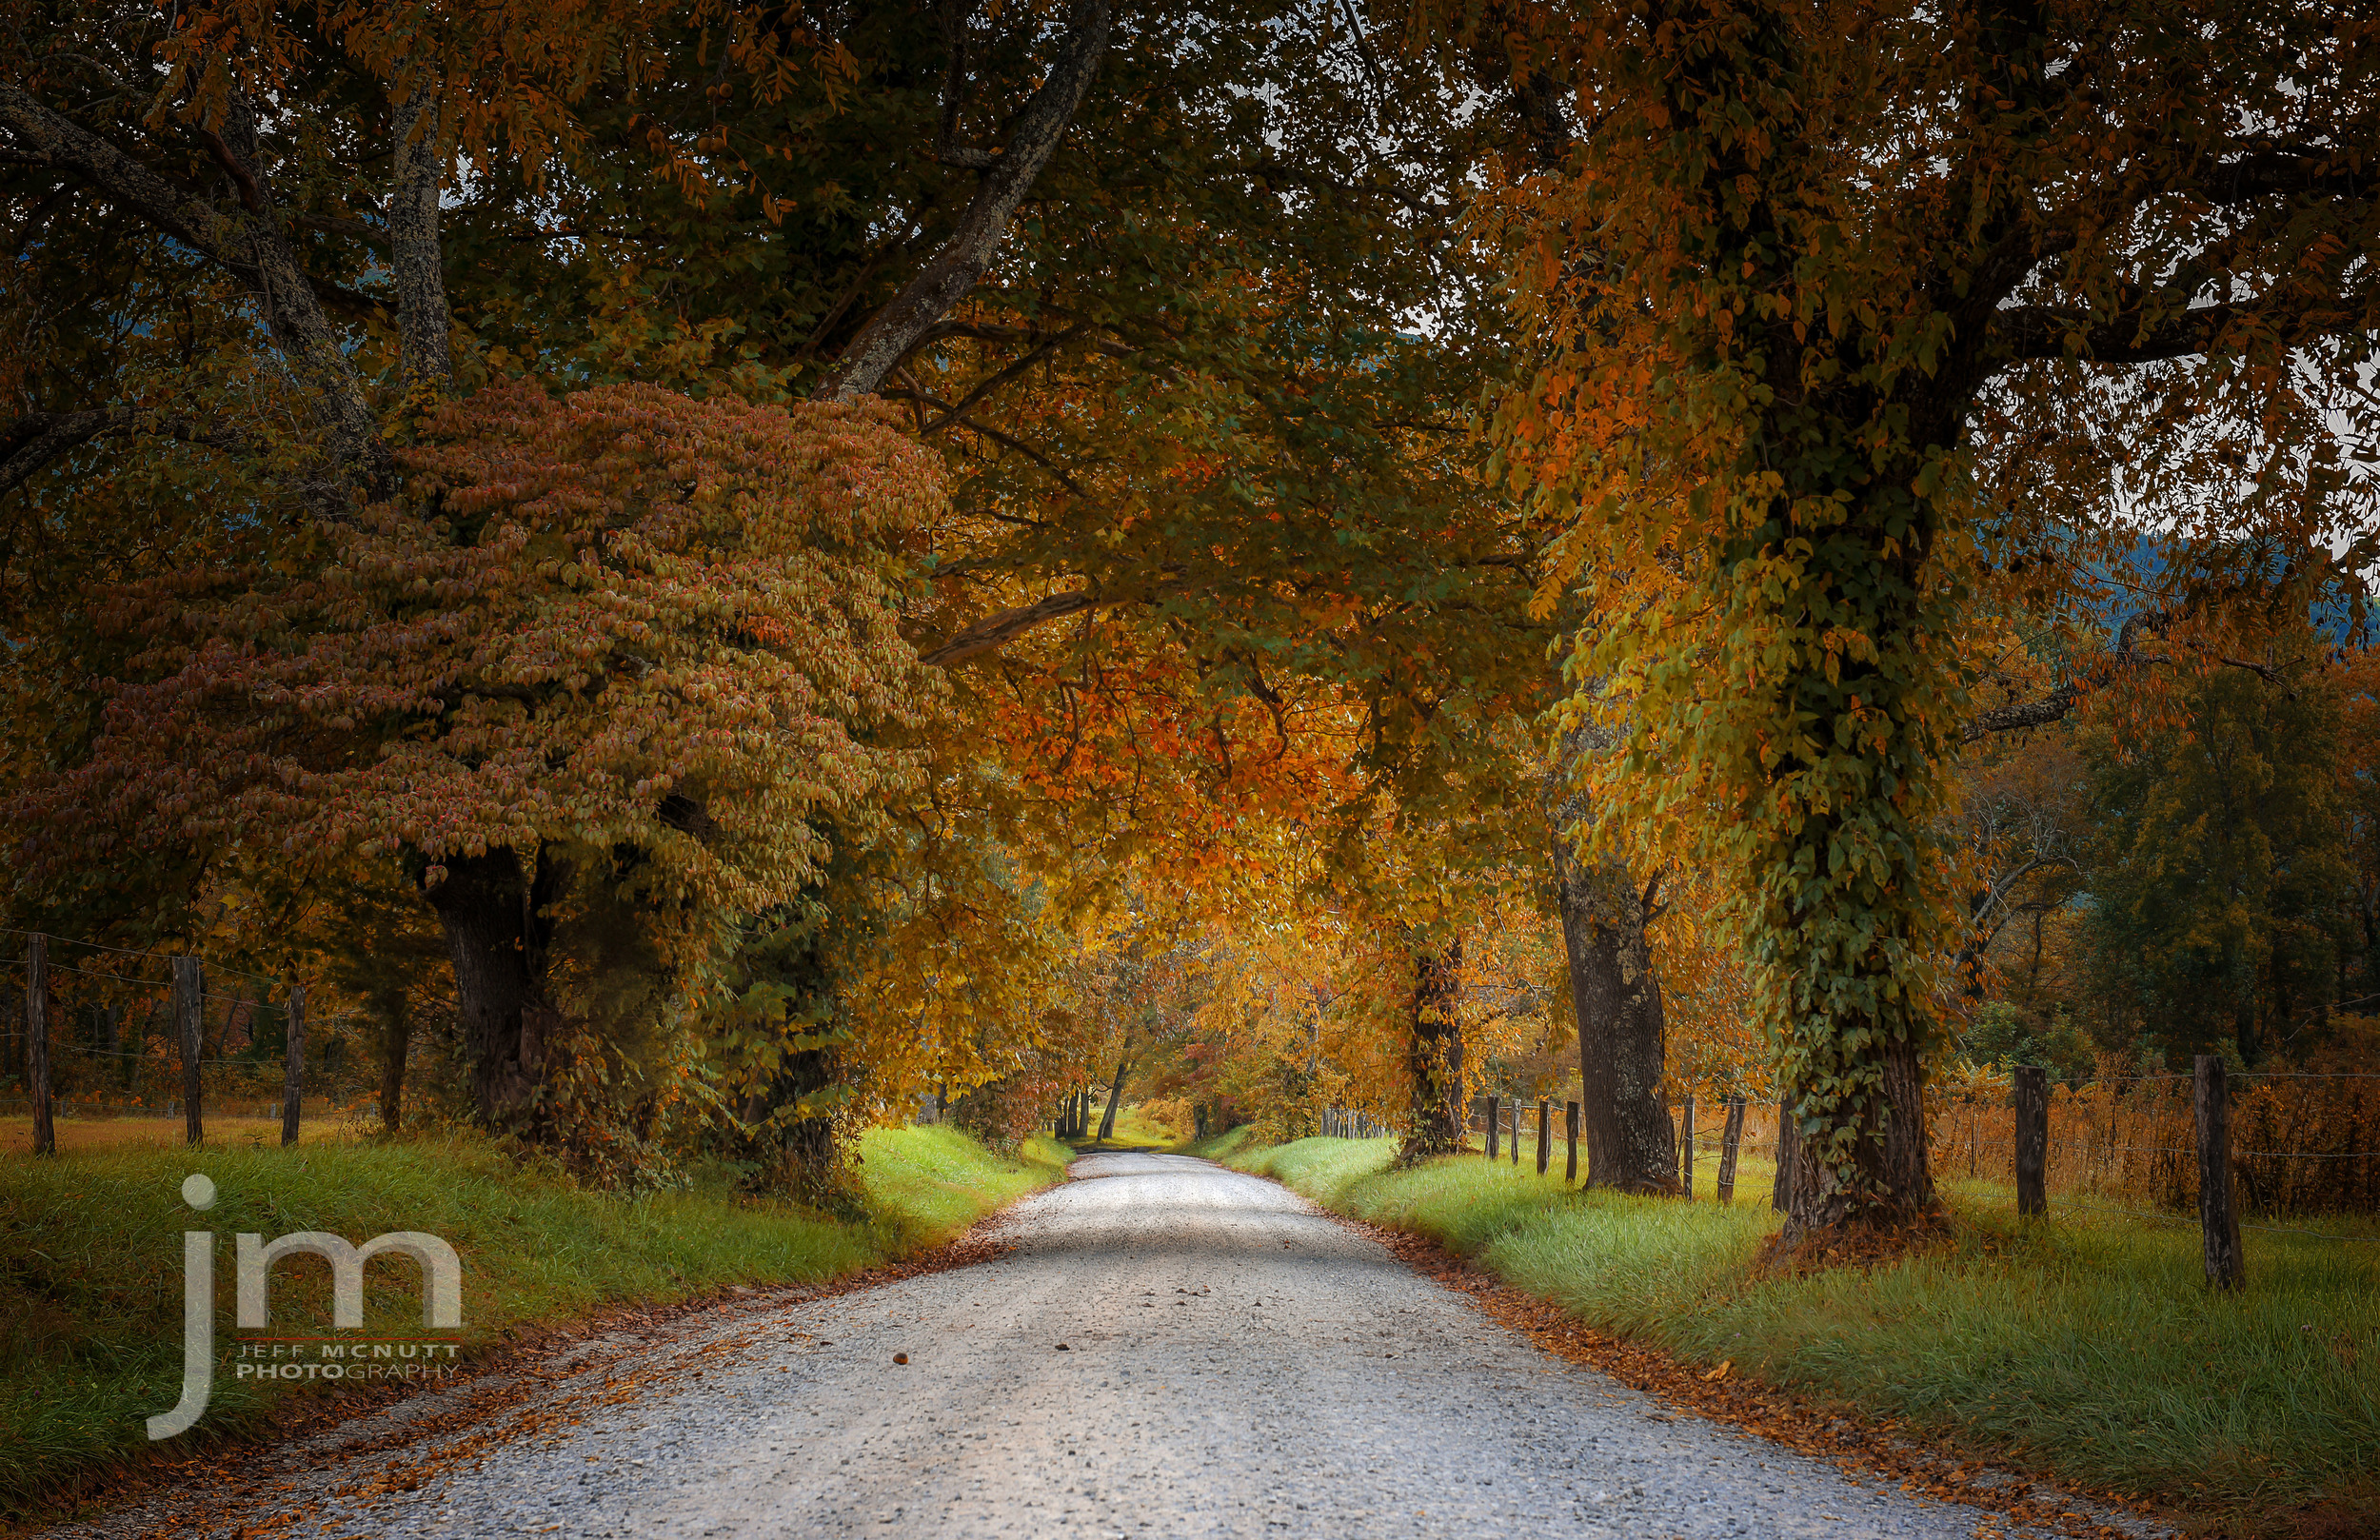 Sparks Lane, Cades Cove, Great Smoky Mountains National Park